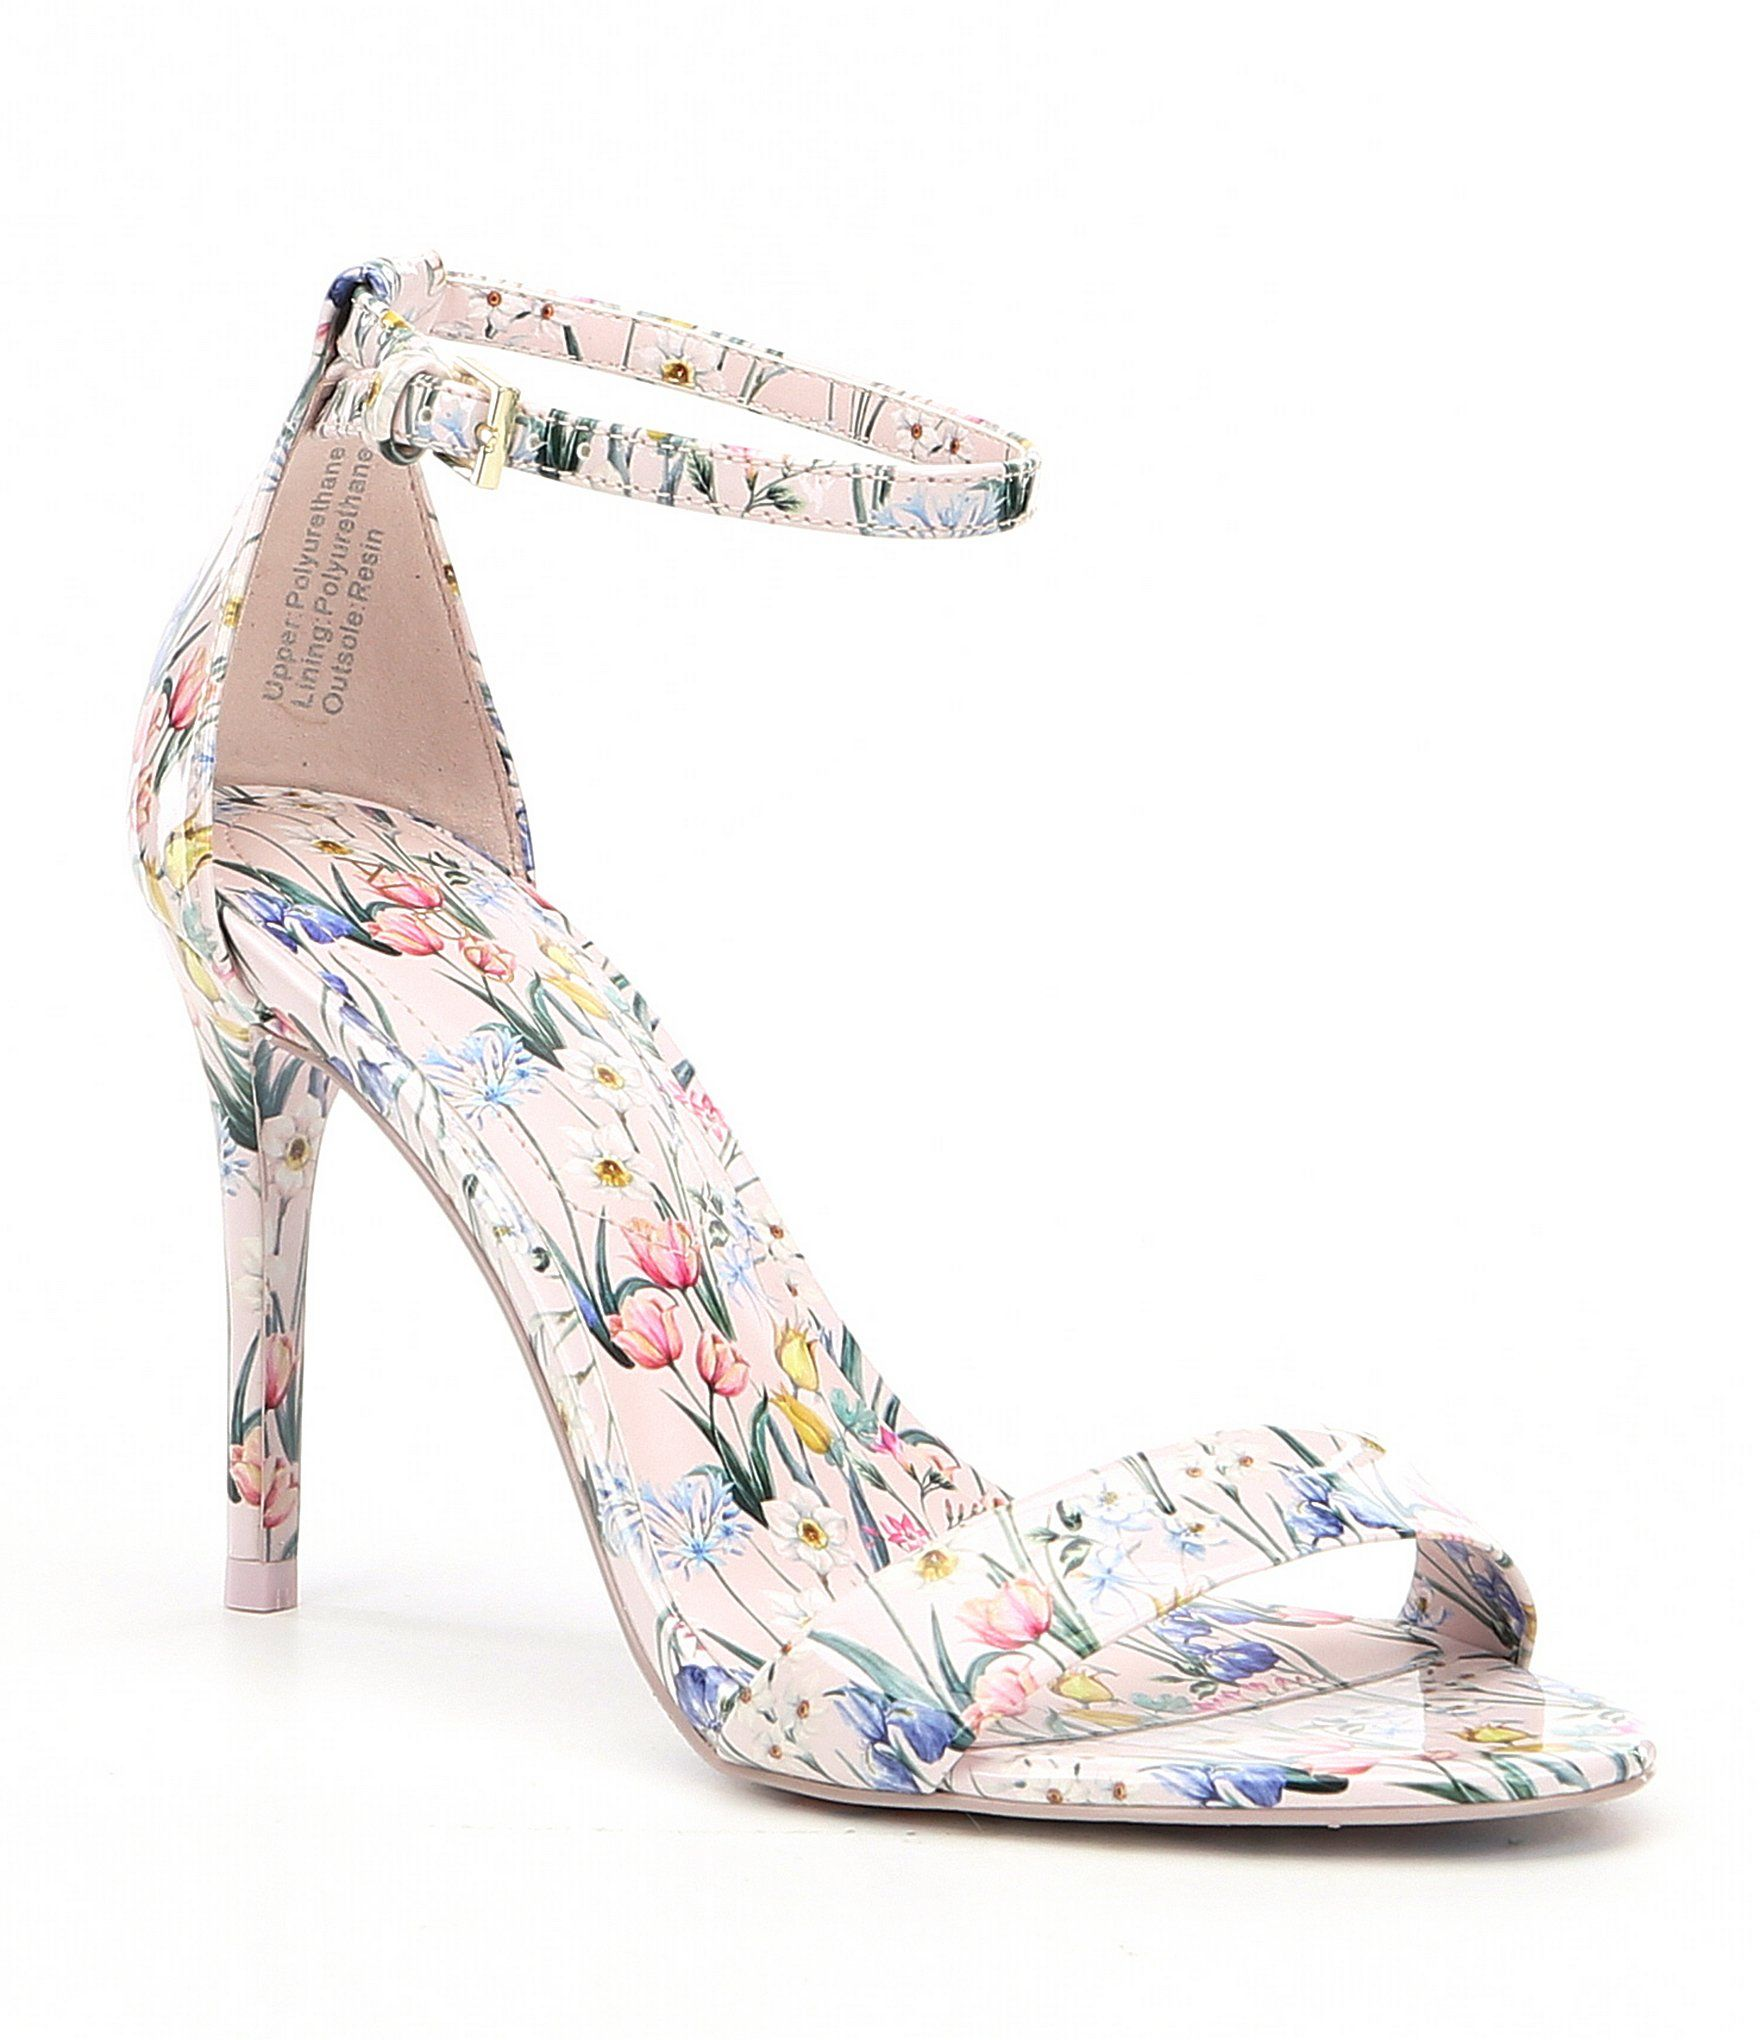 83dad72cecca Shop for ALDO Cally Floral Print Ankle Strap Dress Sandals at Dillards.com.  Visit Dillards.com to find clothing